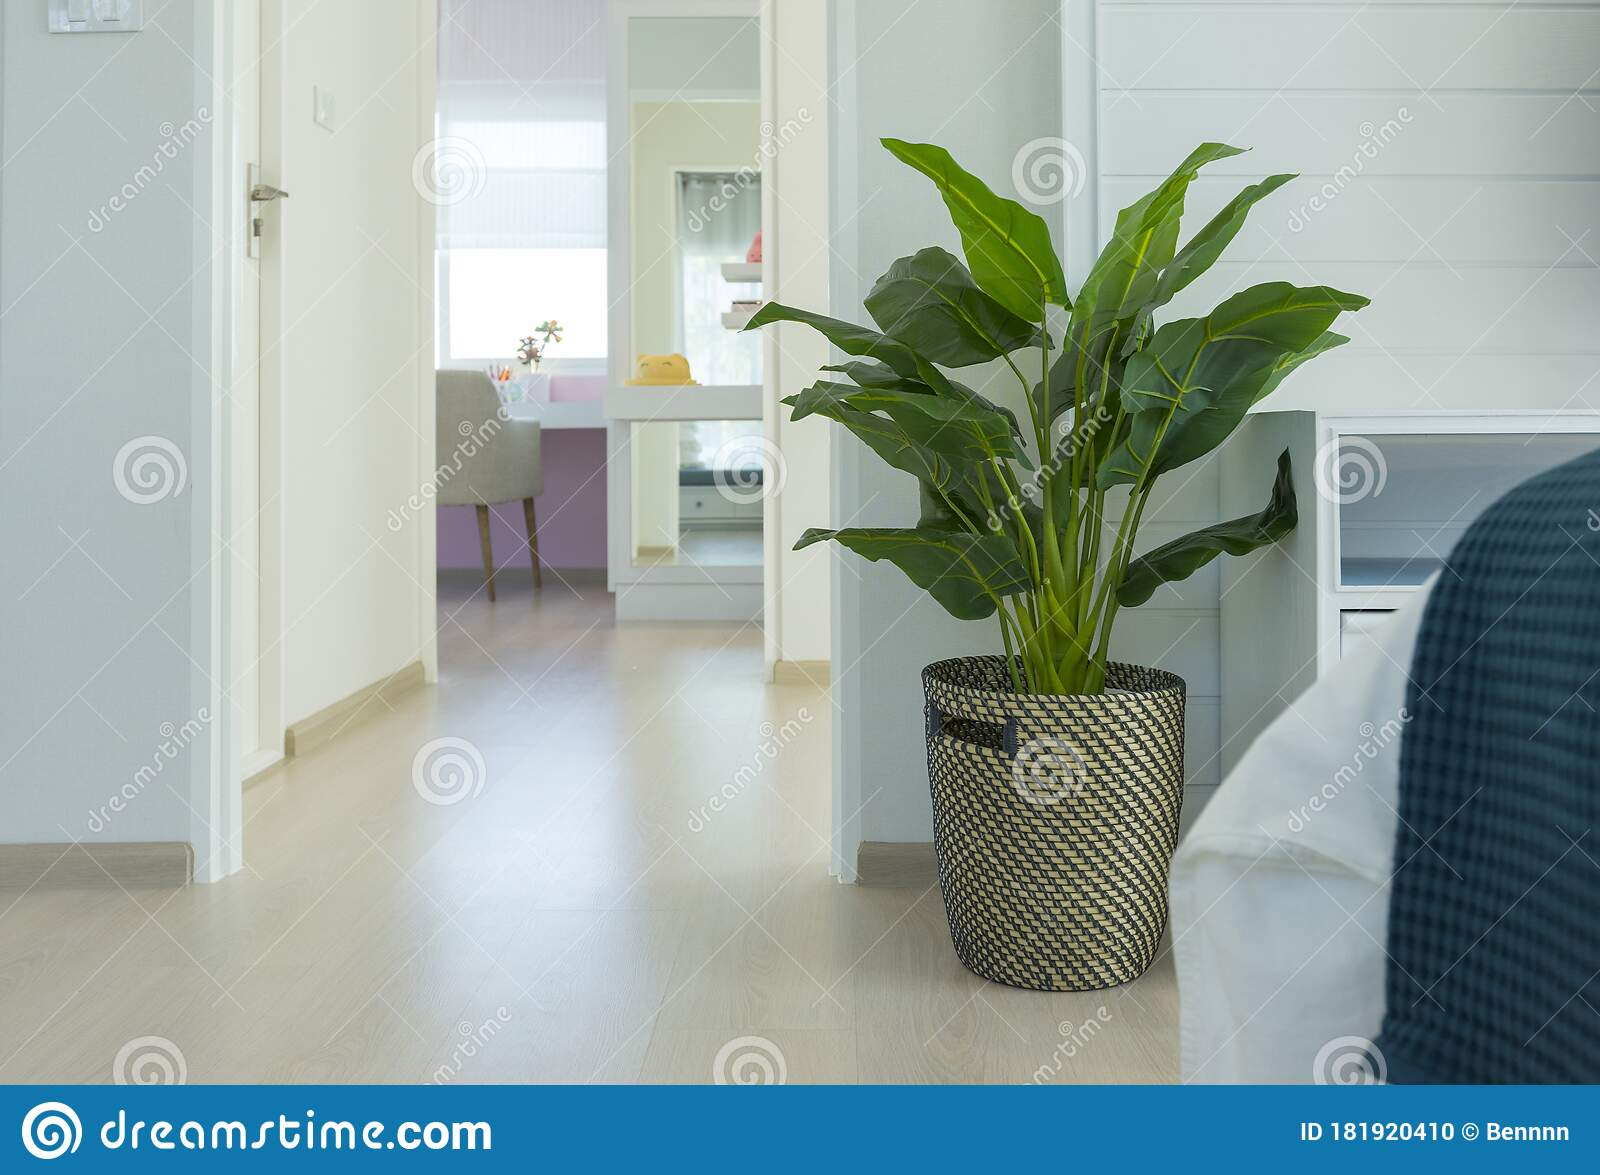 Minimalist Interior Design Of A Living Room With Indoor Plant Stock Photo Image Of Blue Cushions 181920410